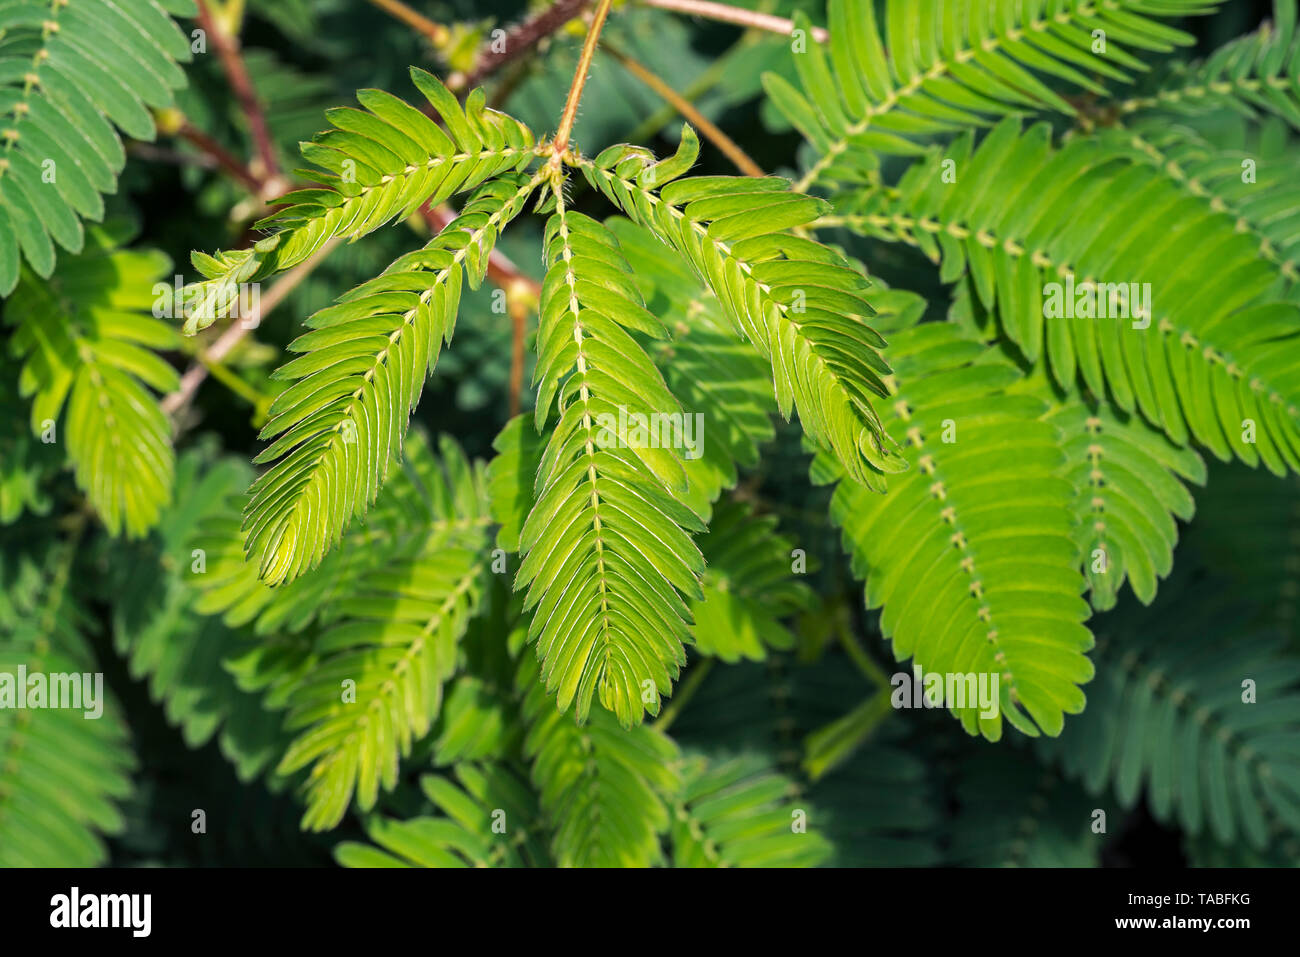 Sensitive plant / sleepy plant / touch-me-not (Mimosa pudica) close-up of leaflets folding inwards, native to South America and Central America Stock Photo